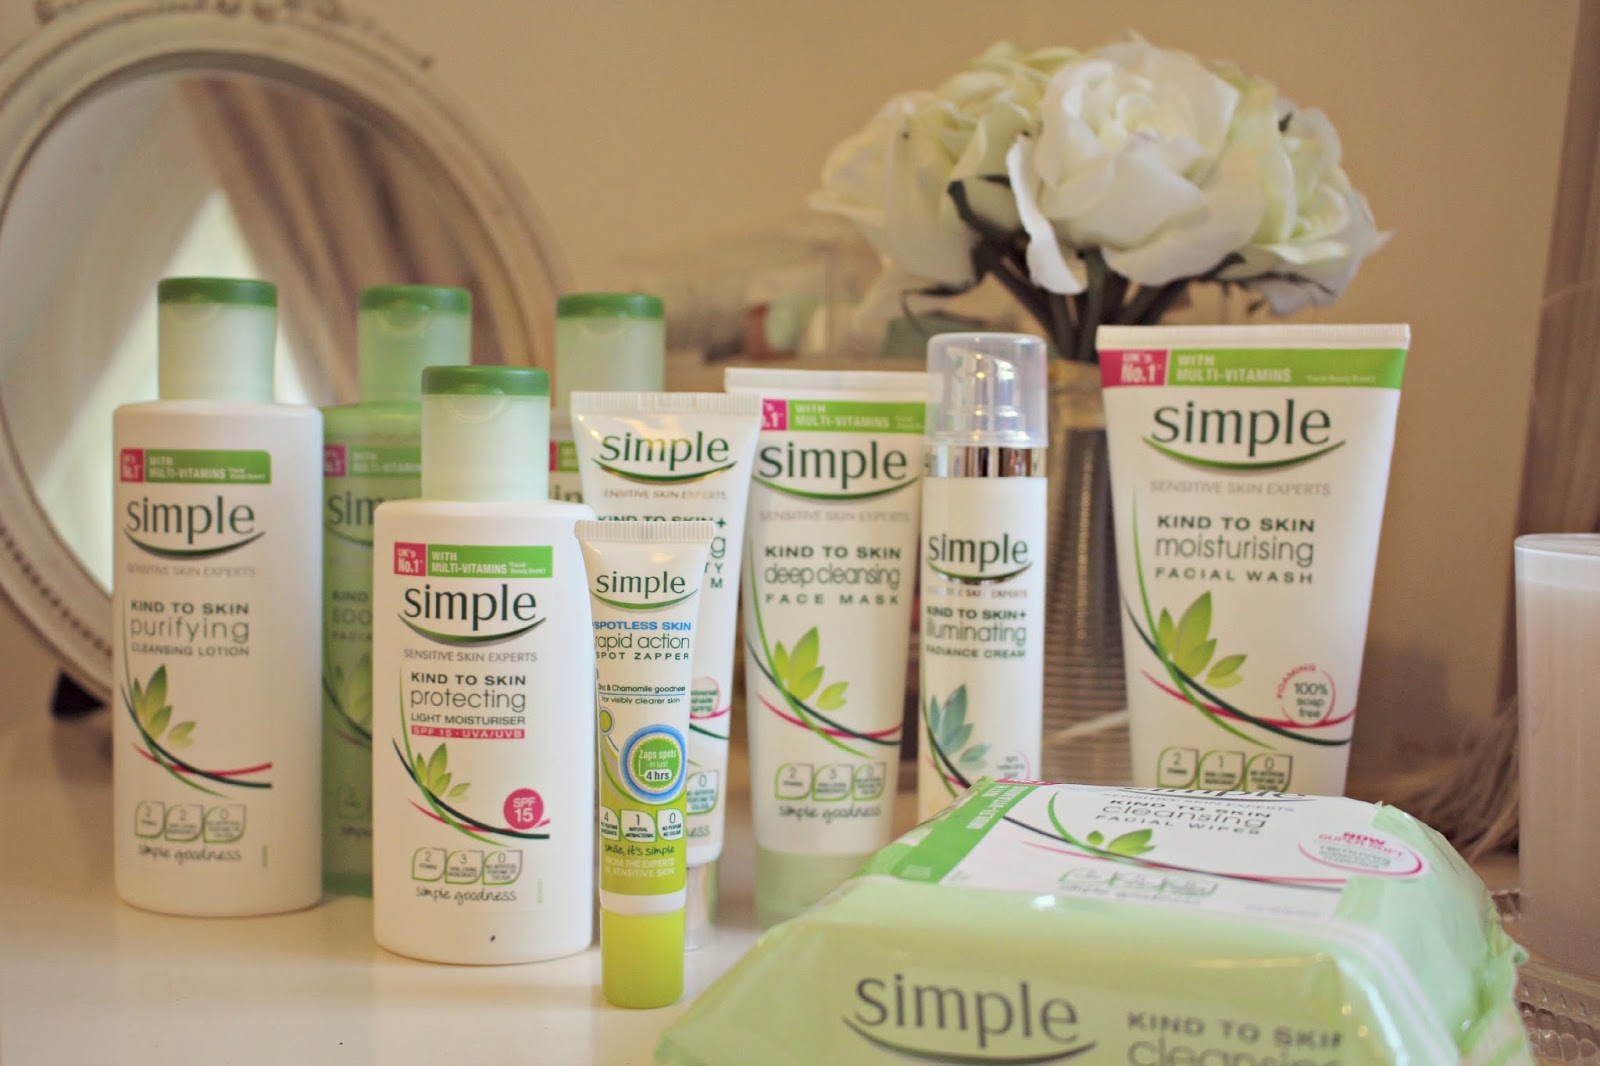 Simple Products simple city summer event kindtocityskin fashion mumblr